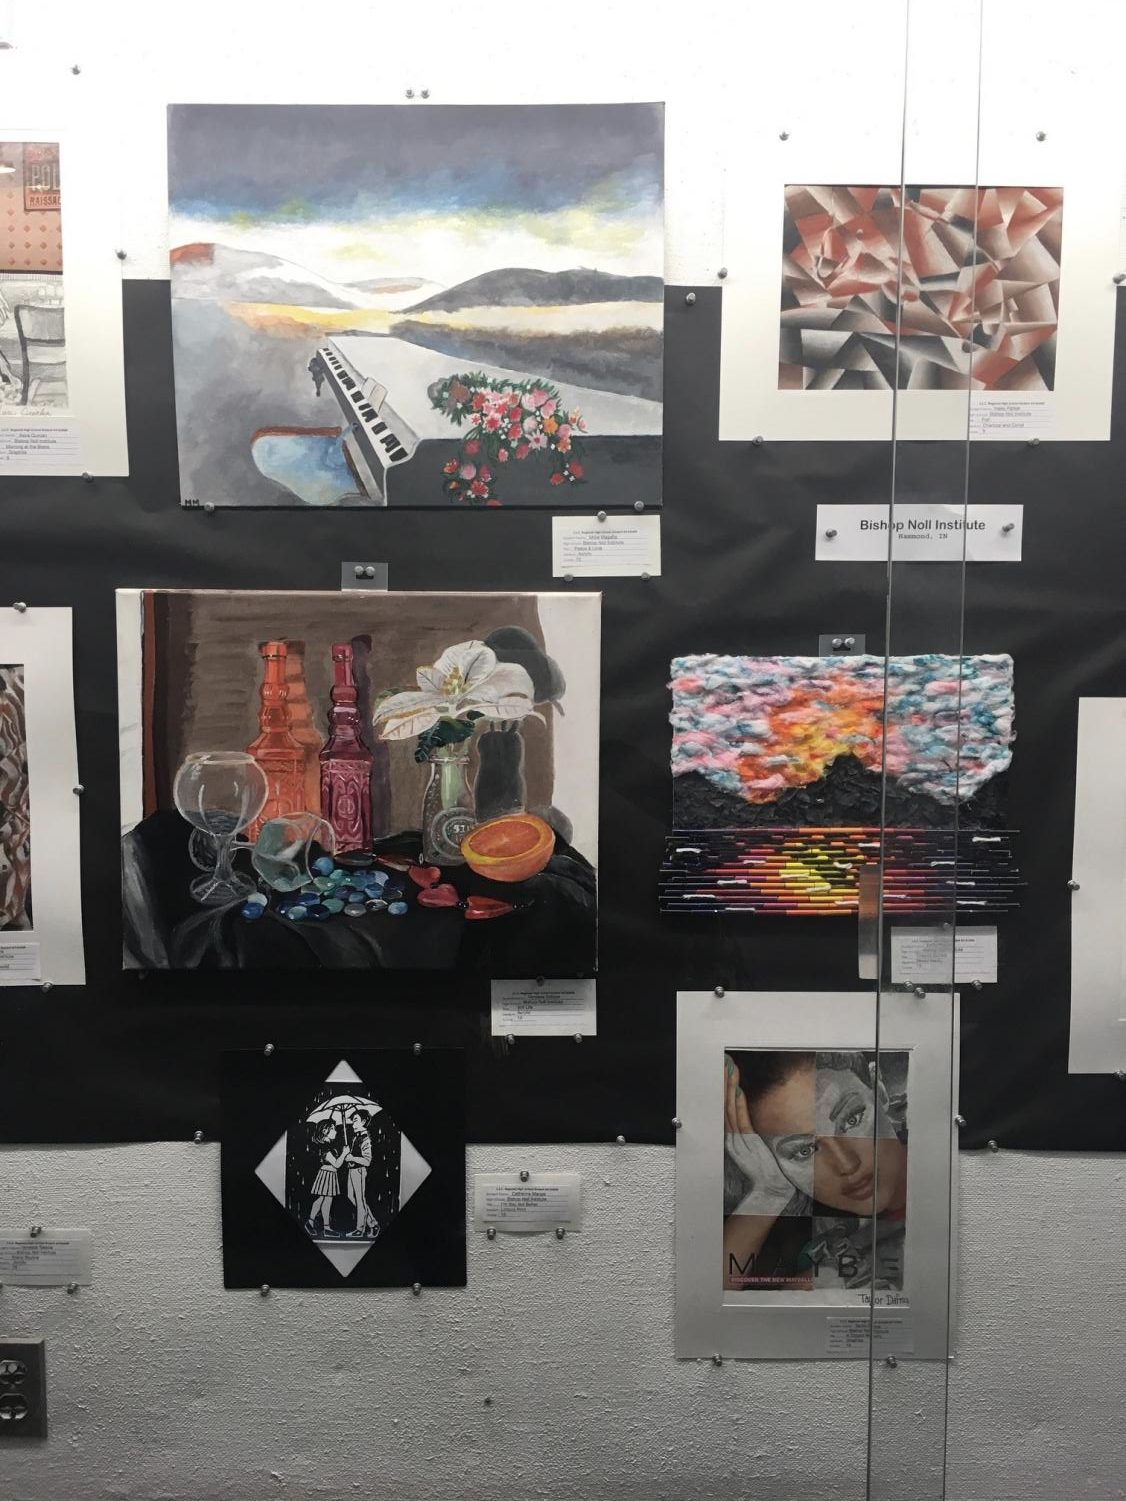 Sophomore Salazar receivers art scholarship at SSC art show